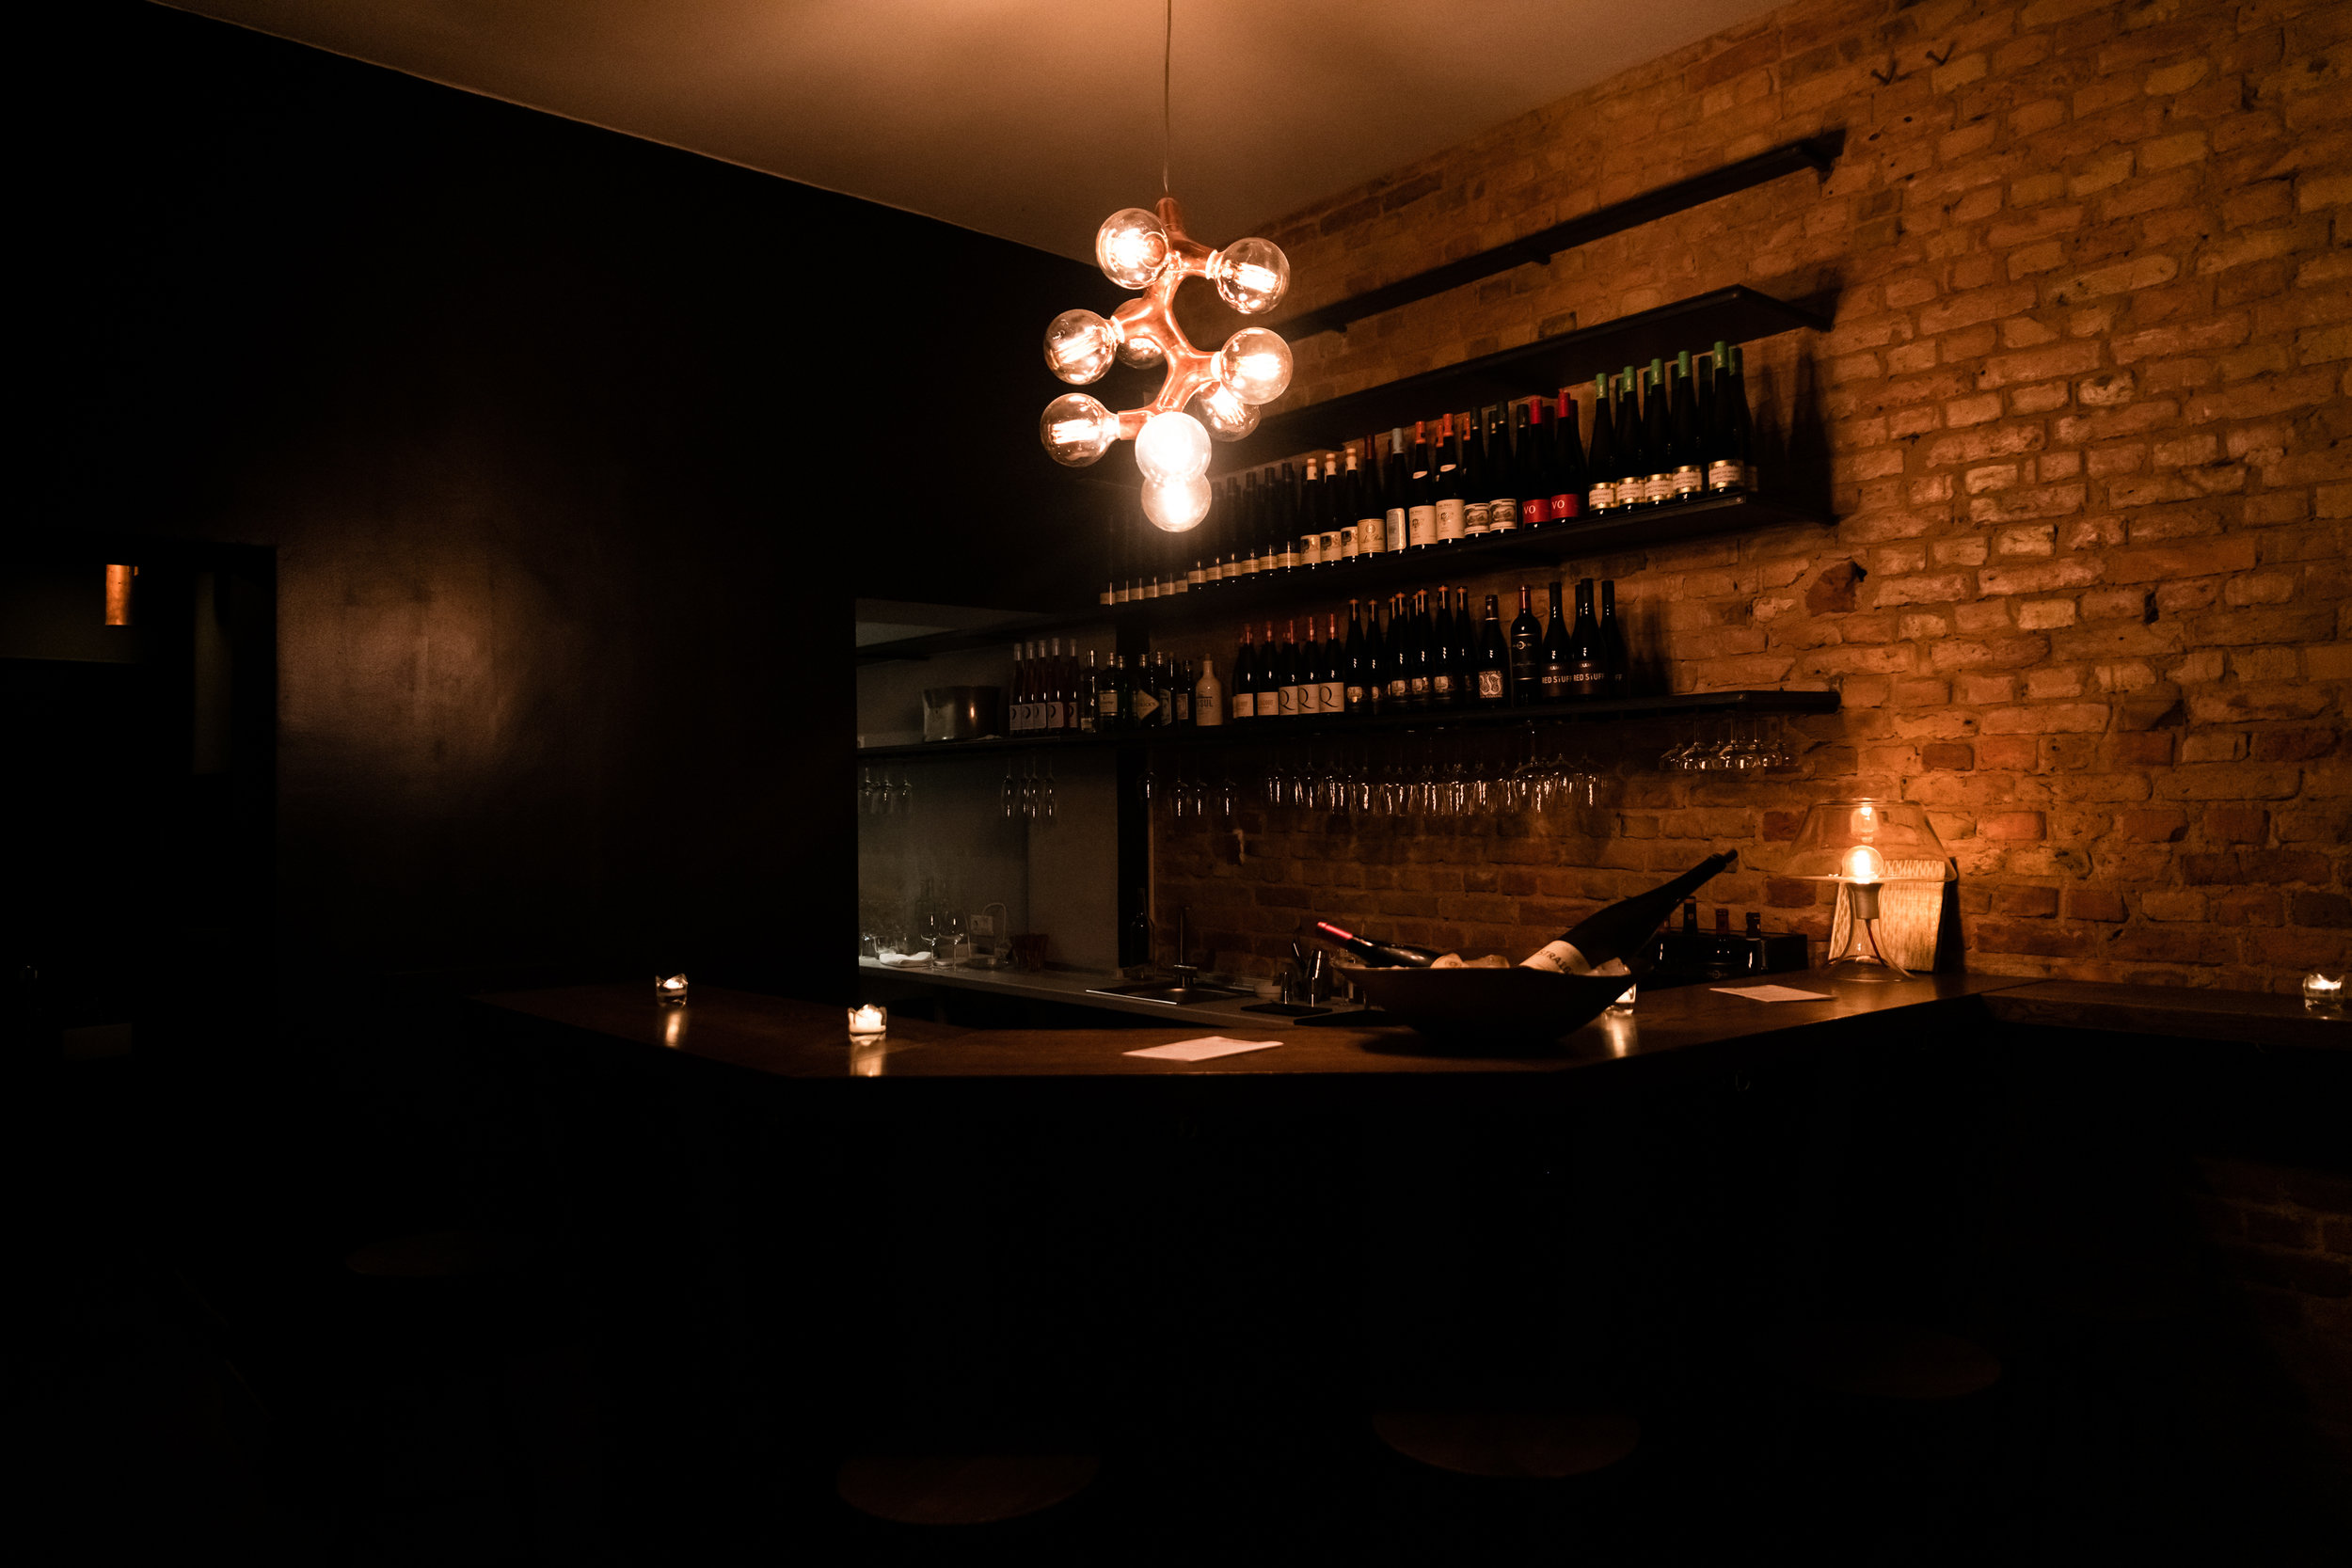 Gloomy view of exposed brick wall and shelves with wine bottles at Freunde bar